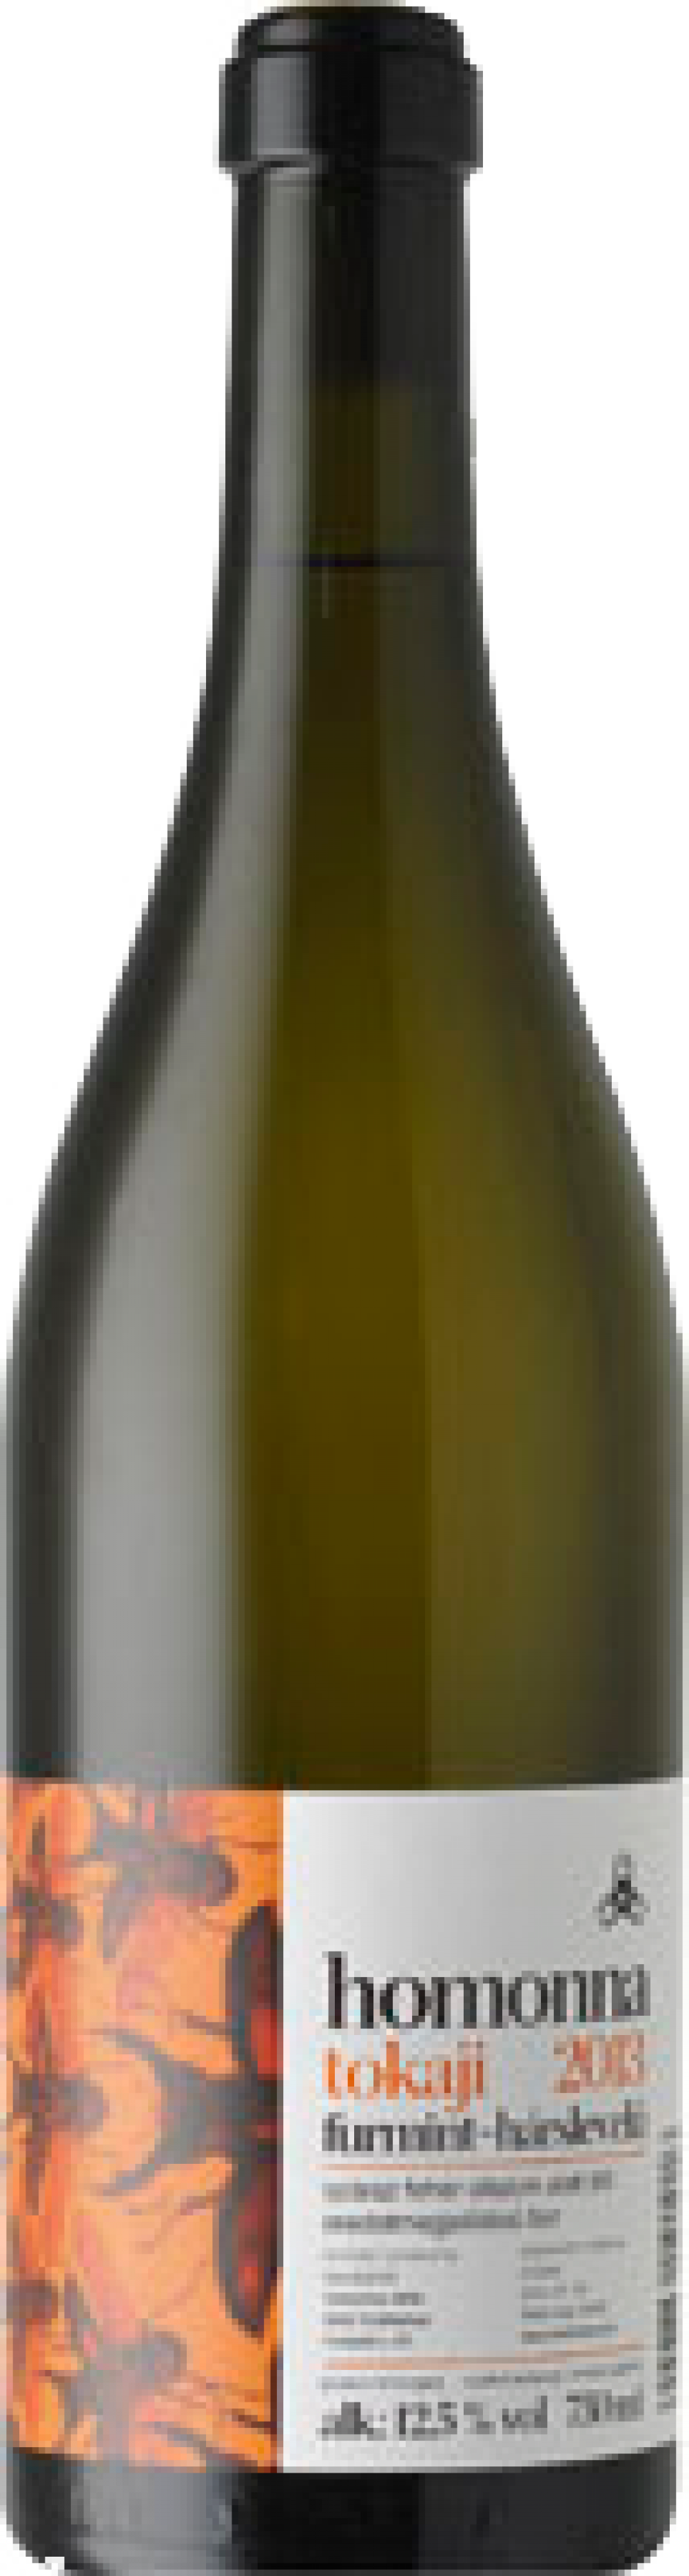 files/images/wines/Hungary/attila-homonna-tokaj/HUN1475.png